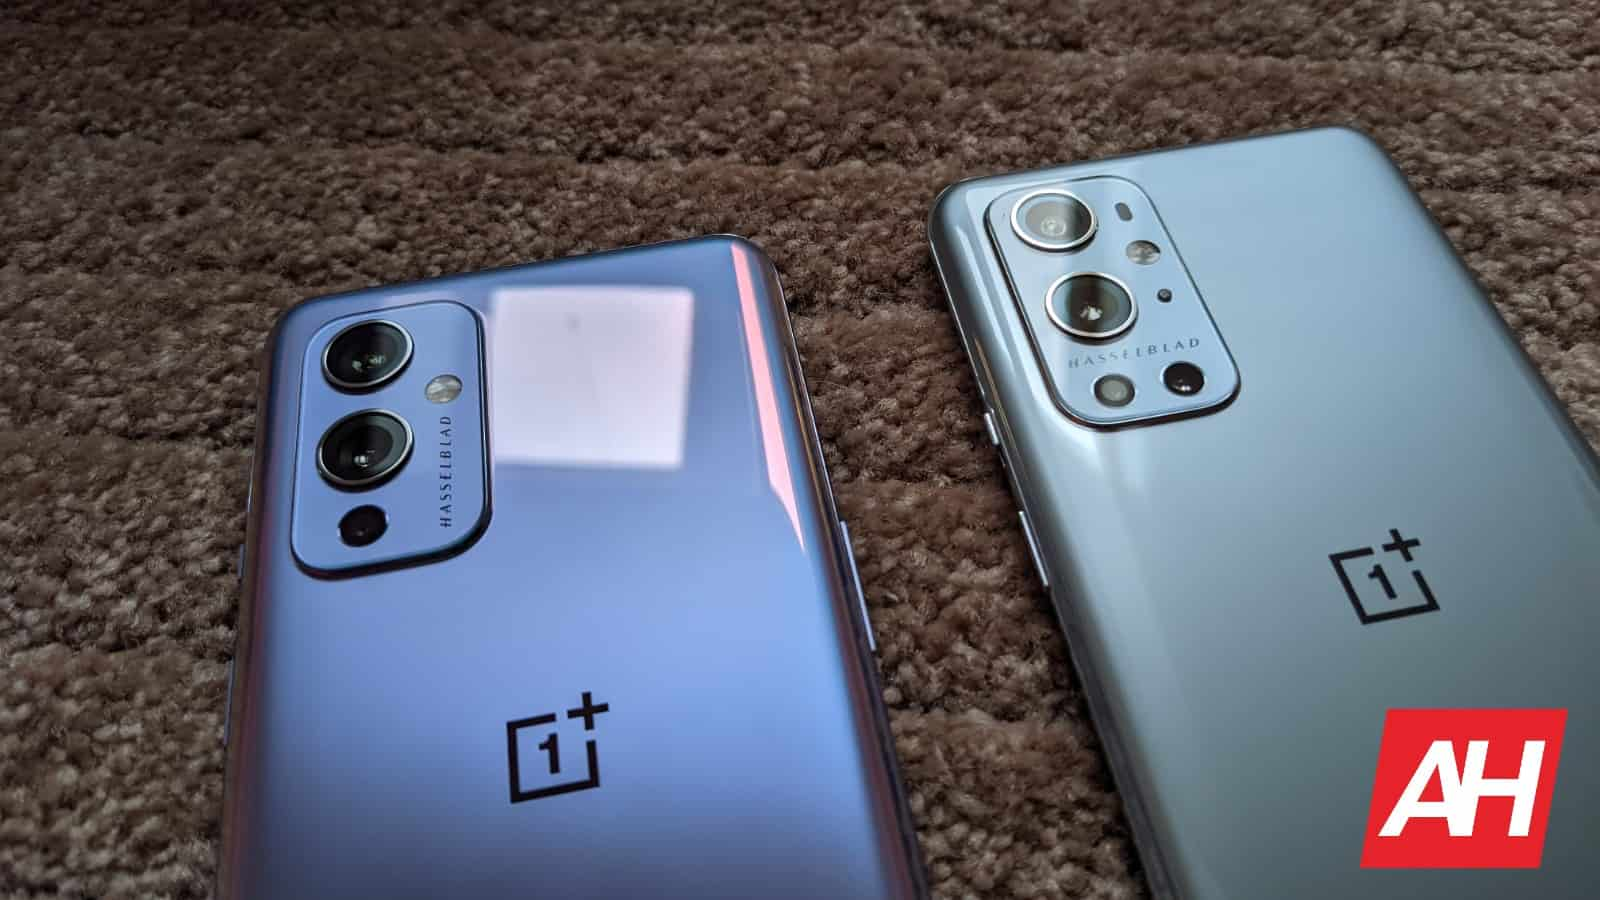 AH OnePlus 9 and 9 Pro KL image 6